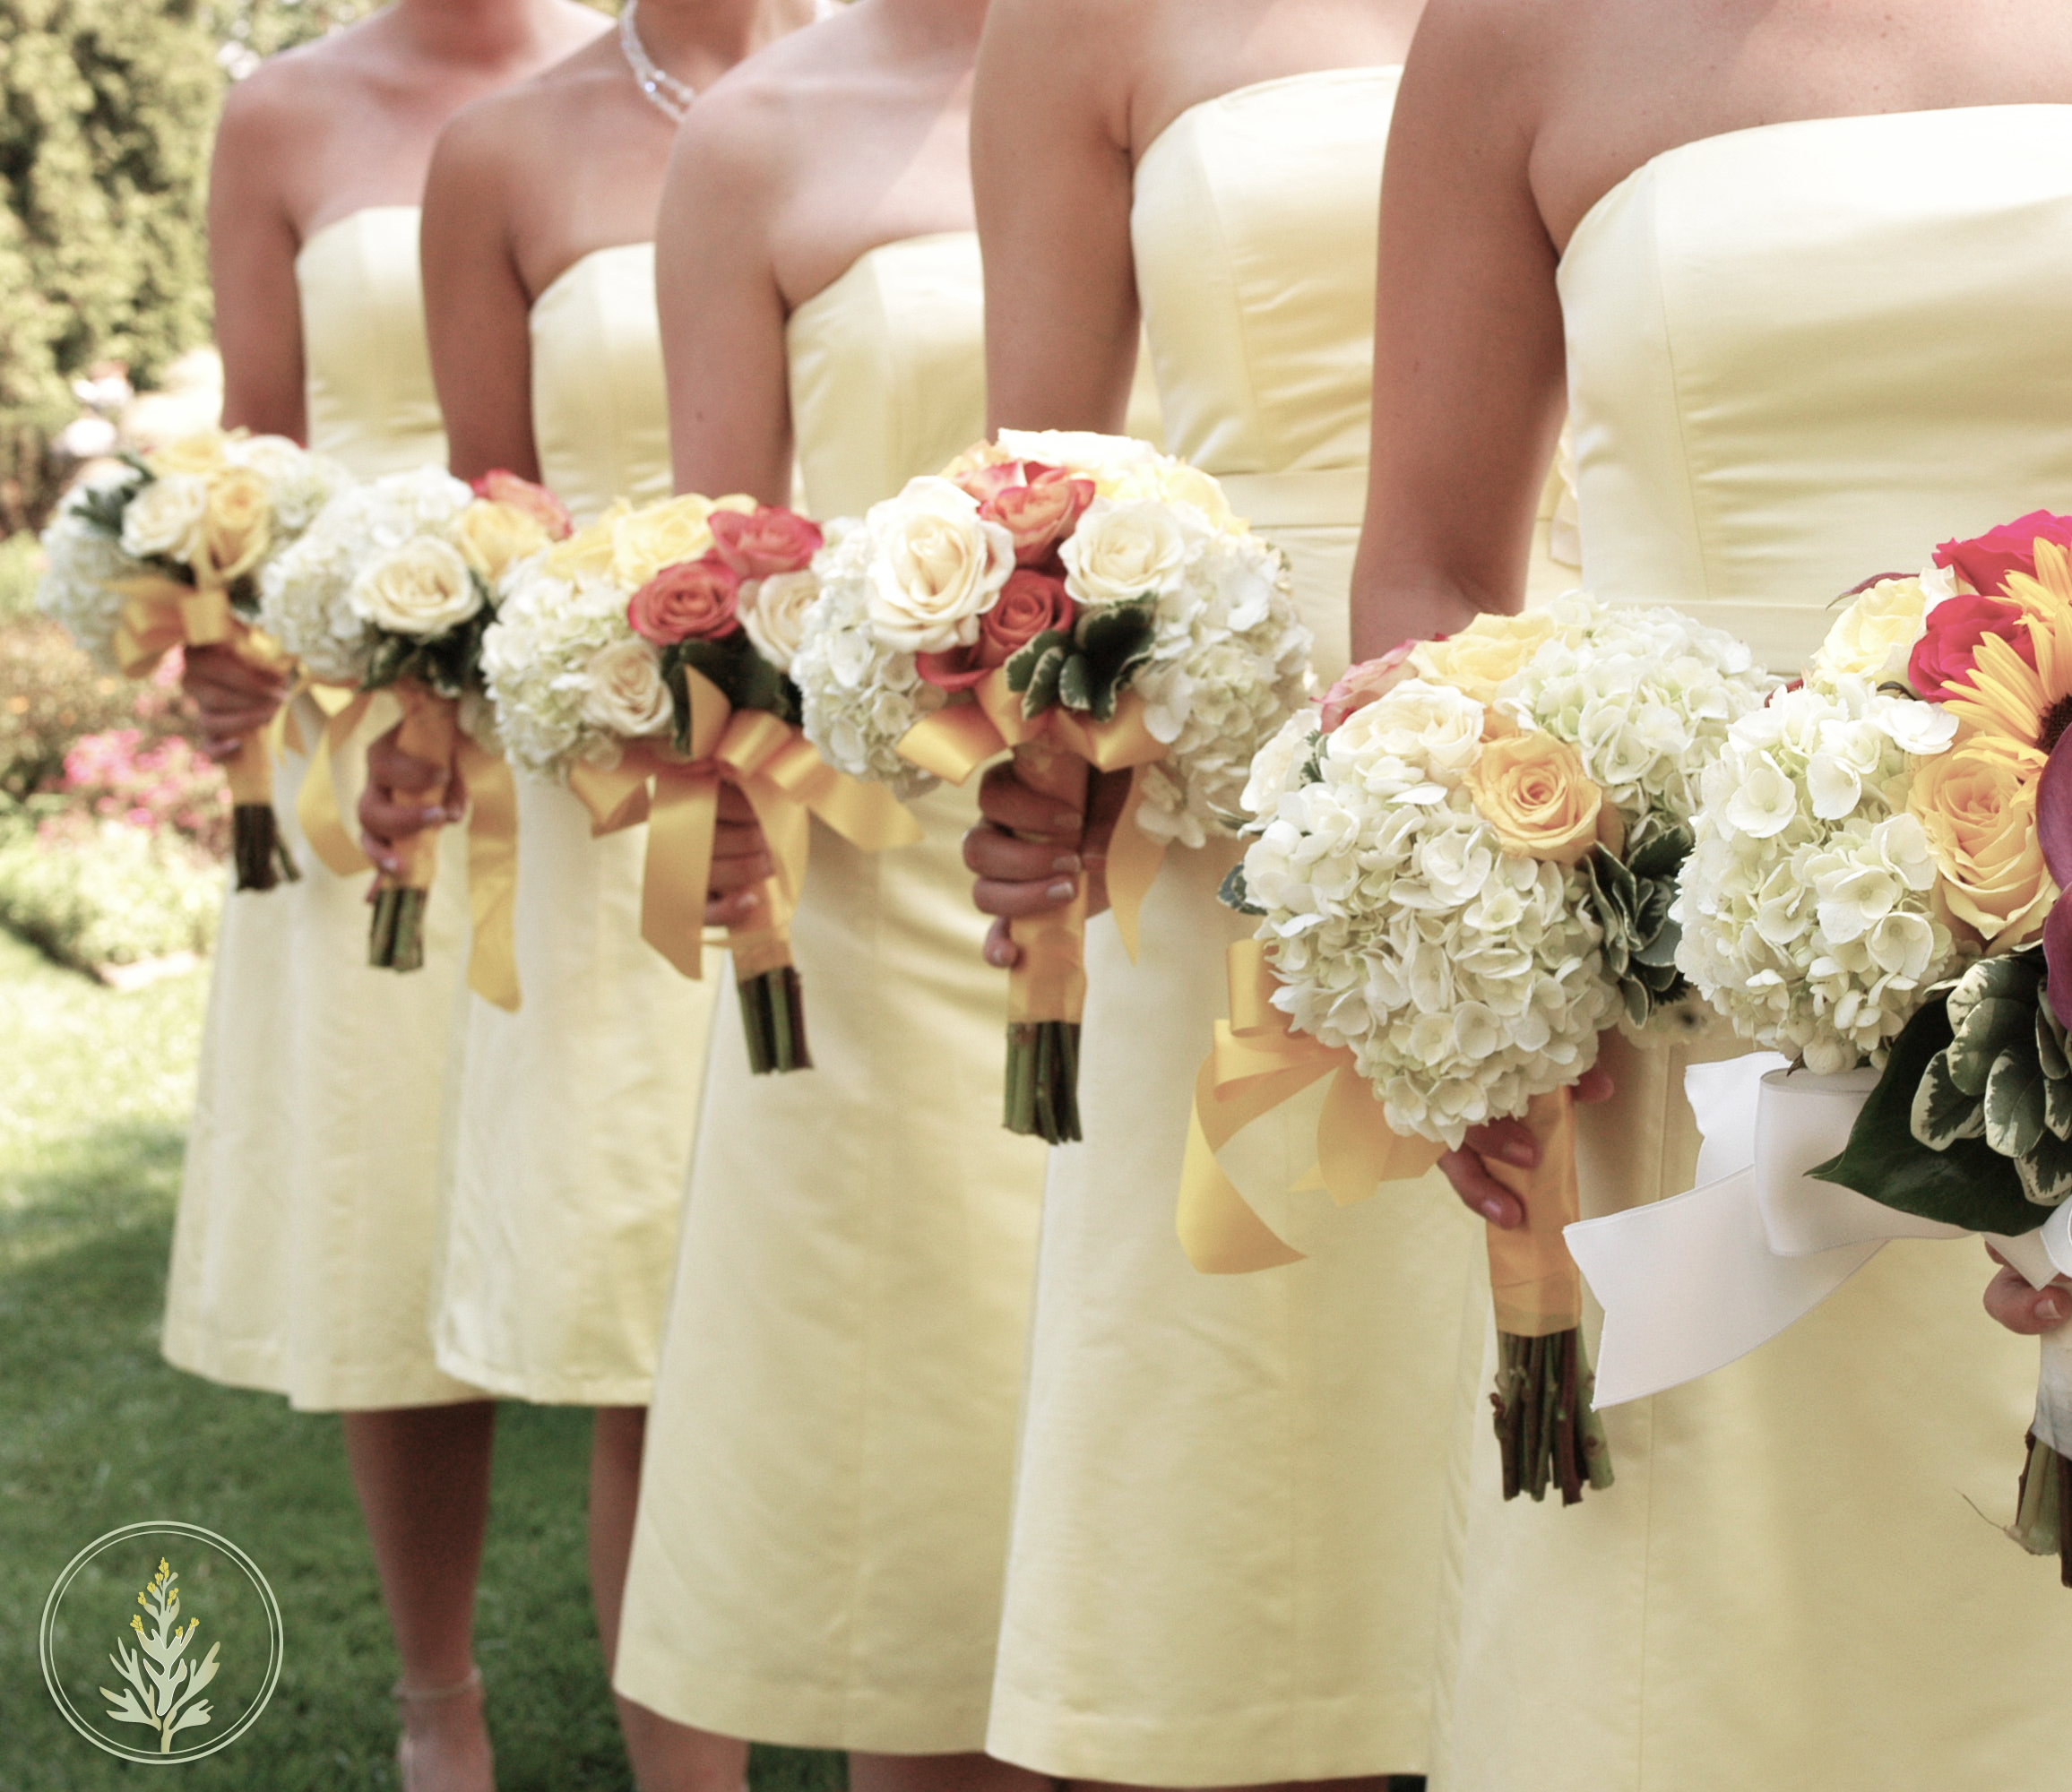 A Wedding Planner's List of Where to Find Perfect and Affordable Bridesmaid Dresses Online